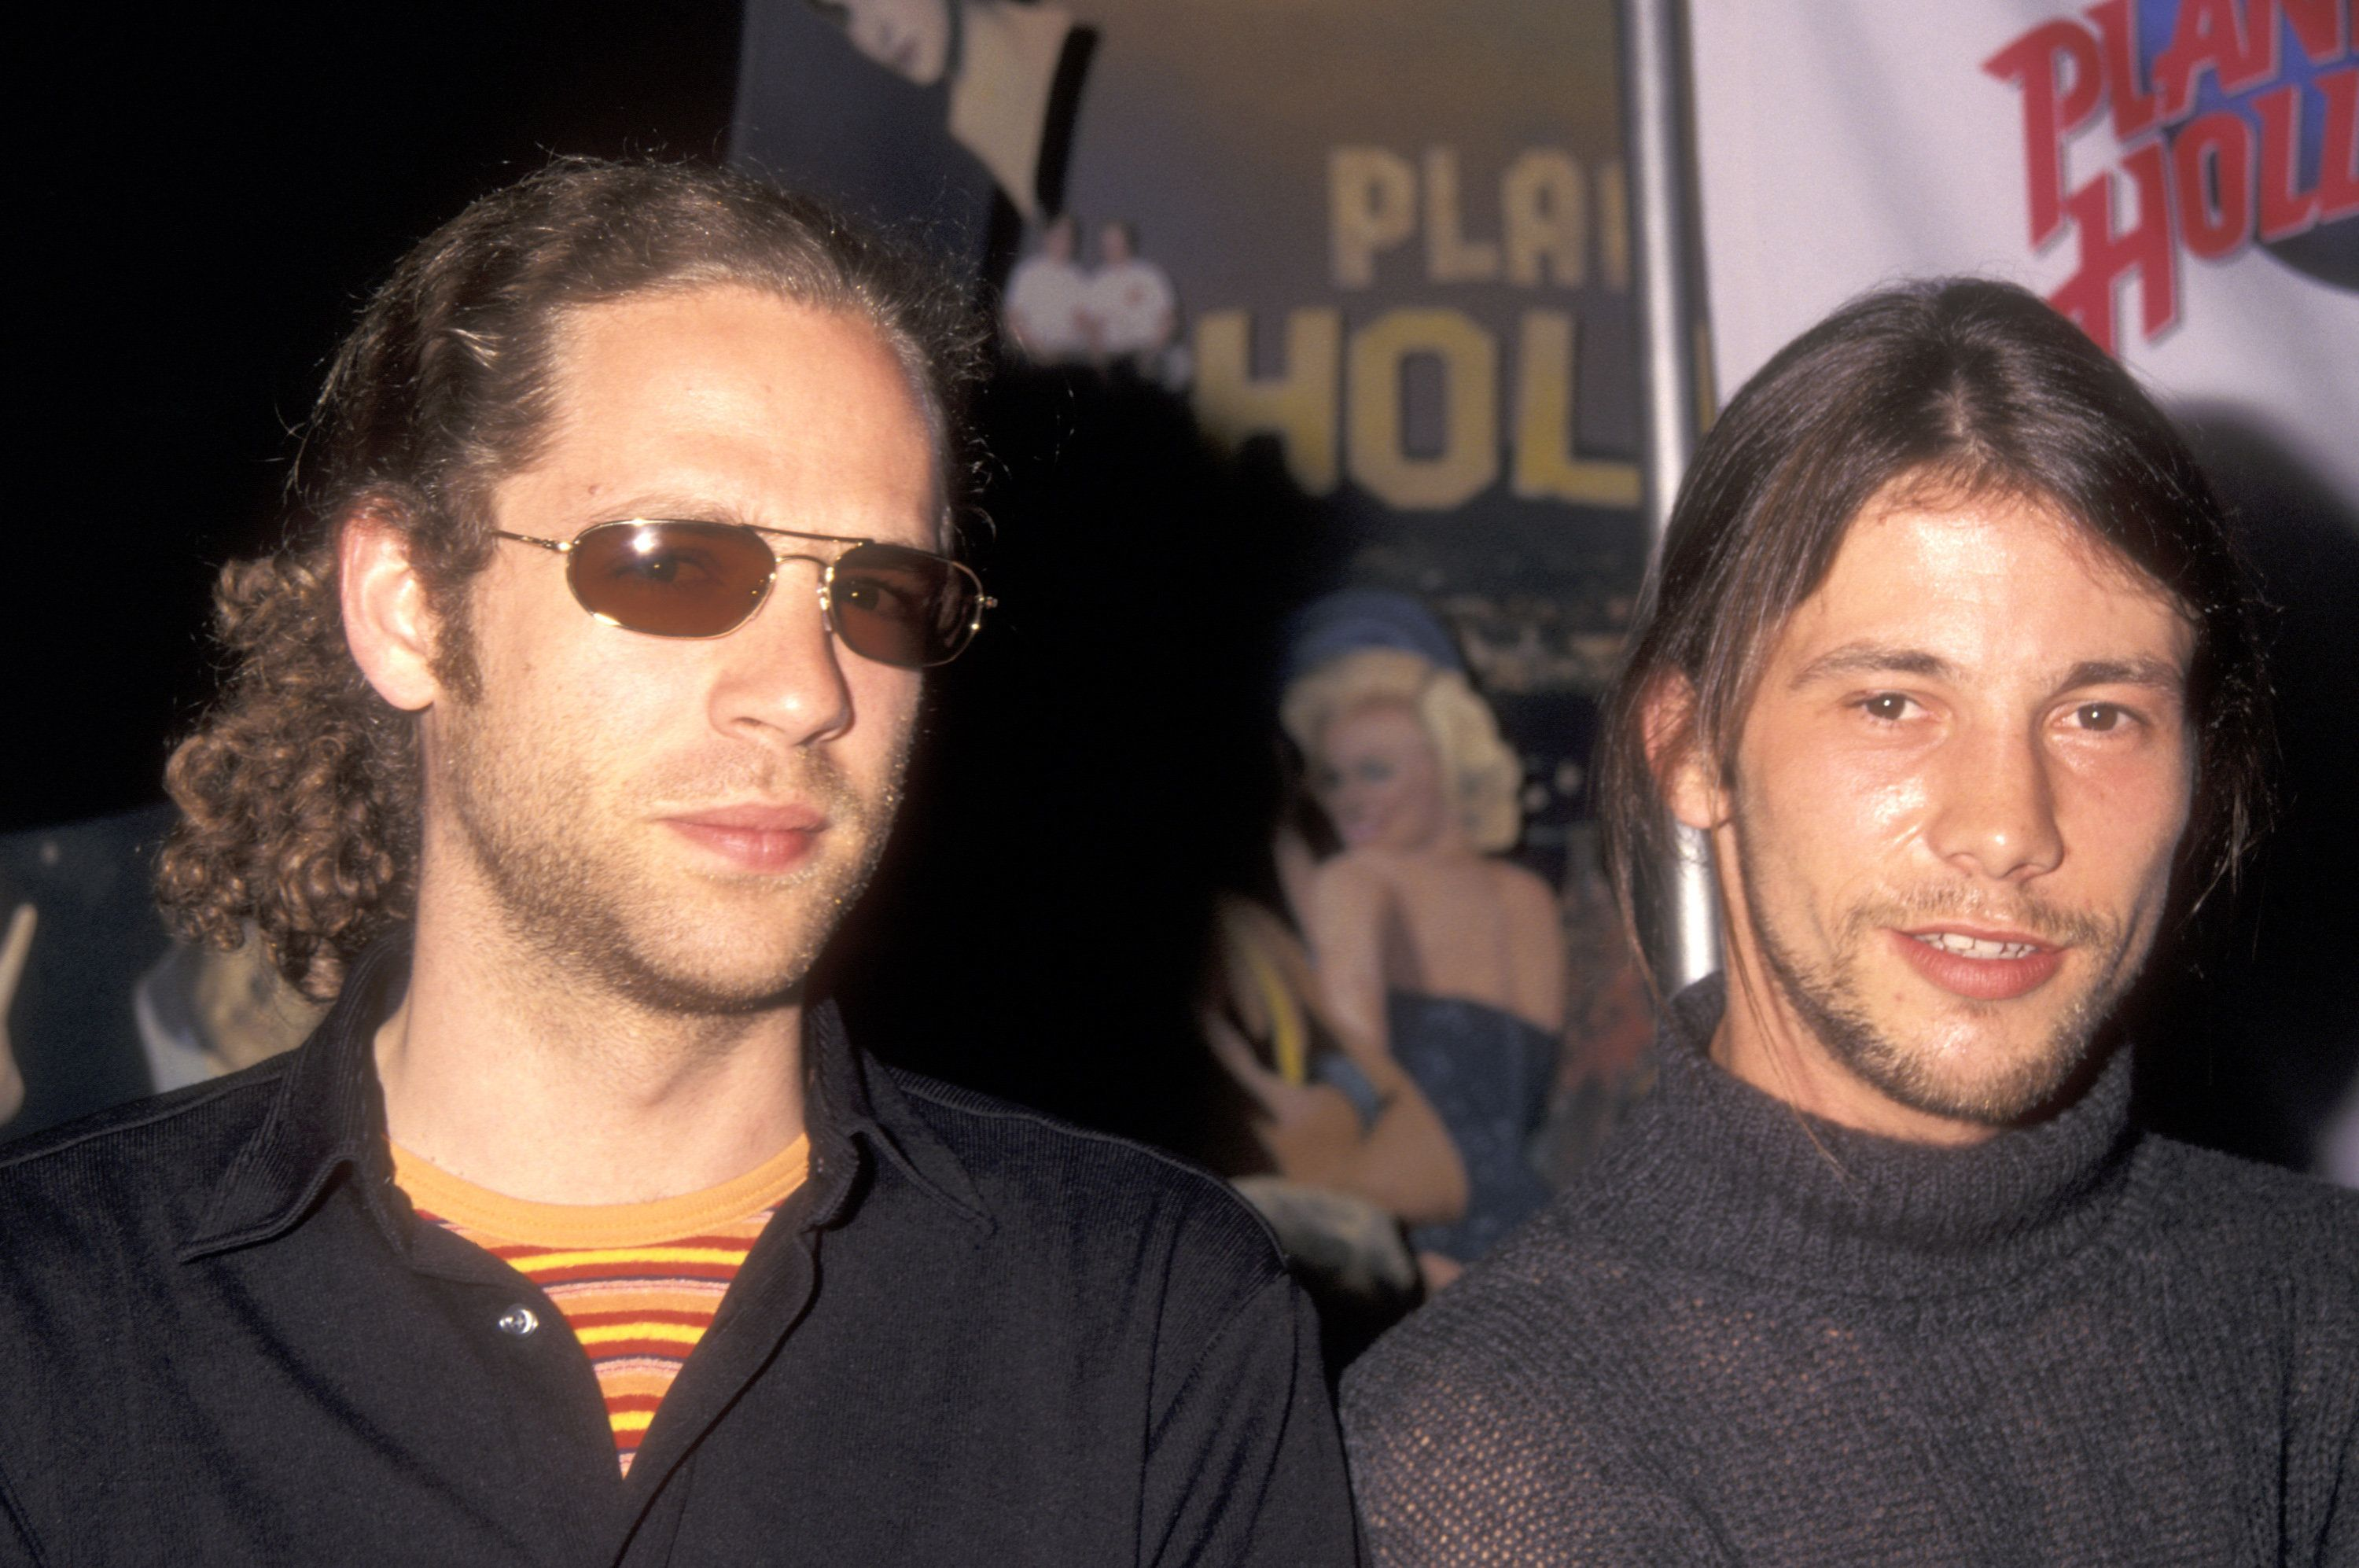 Toby Smith (left) has died at the age of 46, seen here with Jamiroquai singer Jay